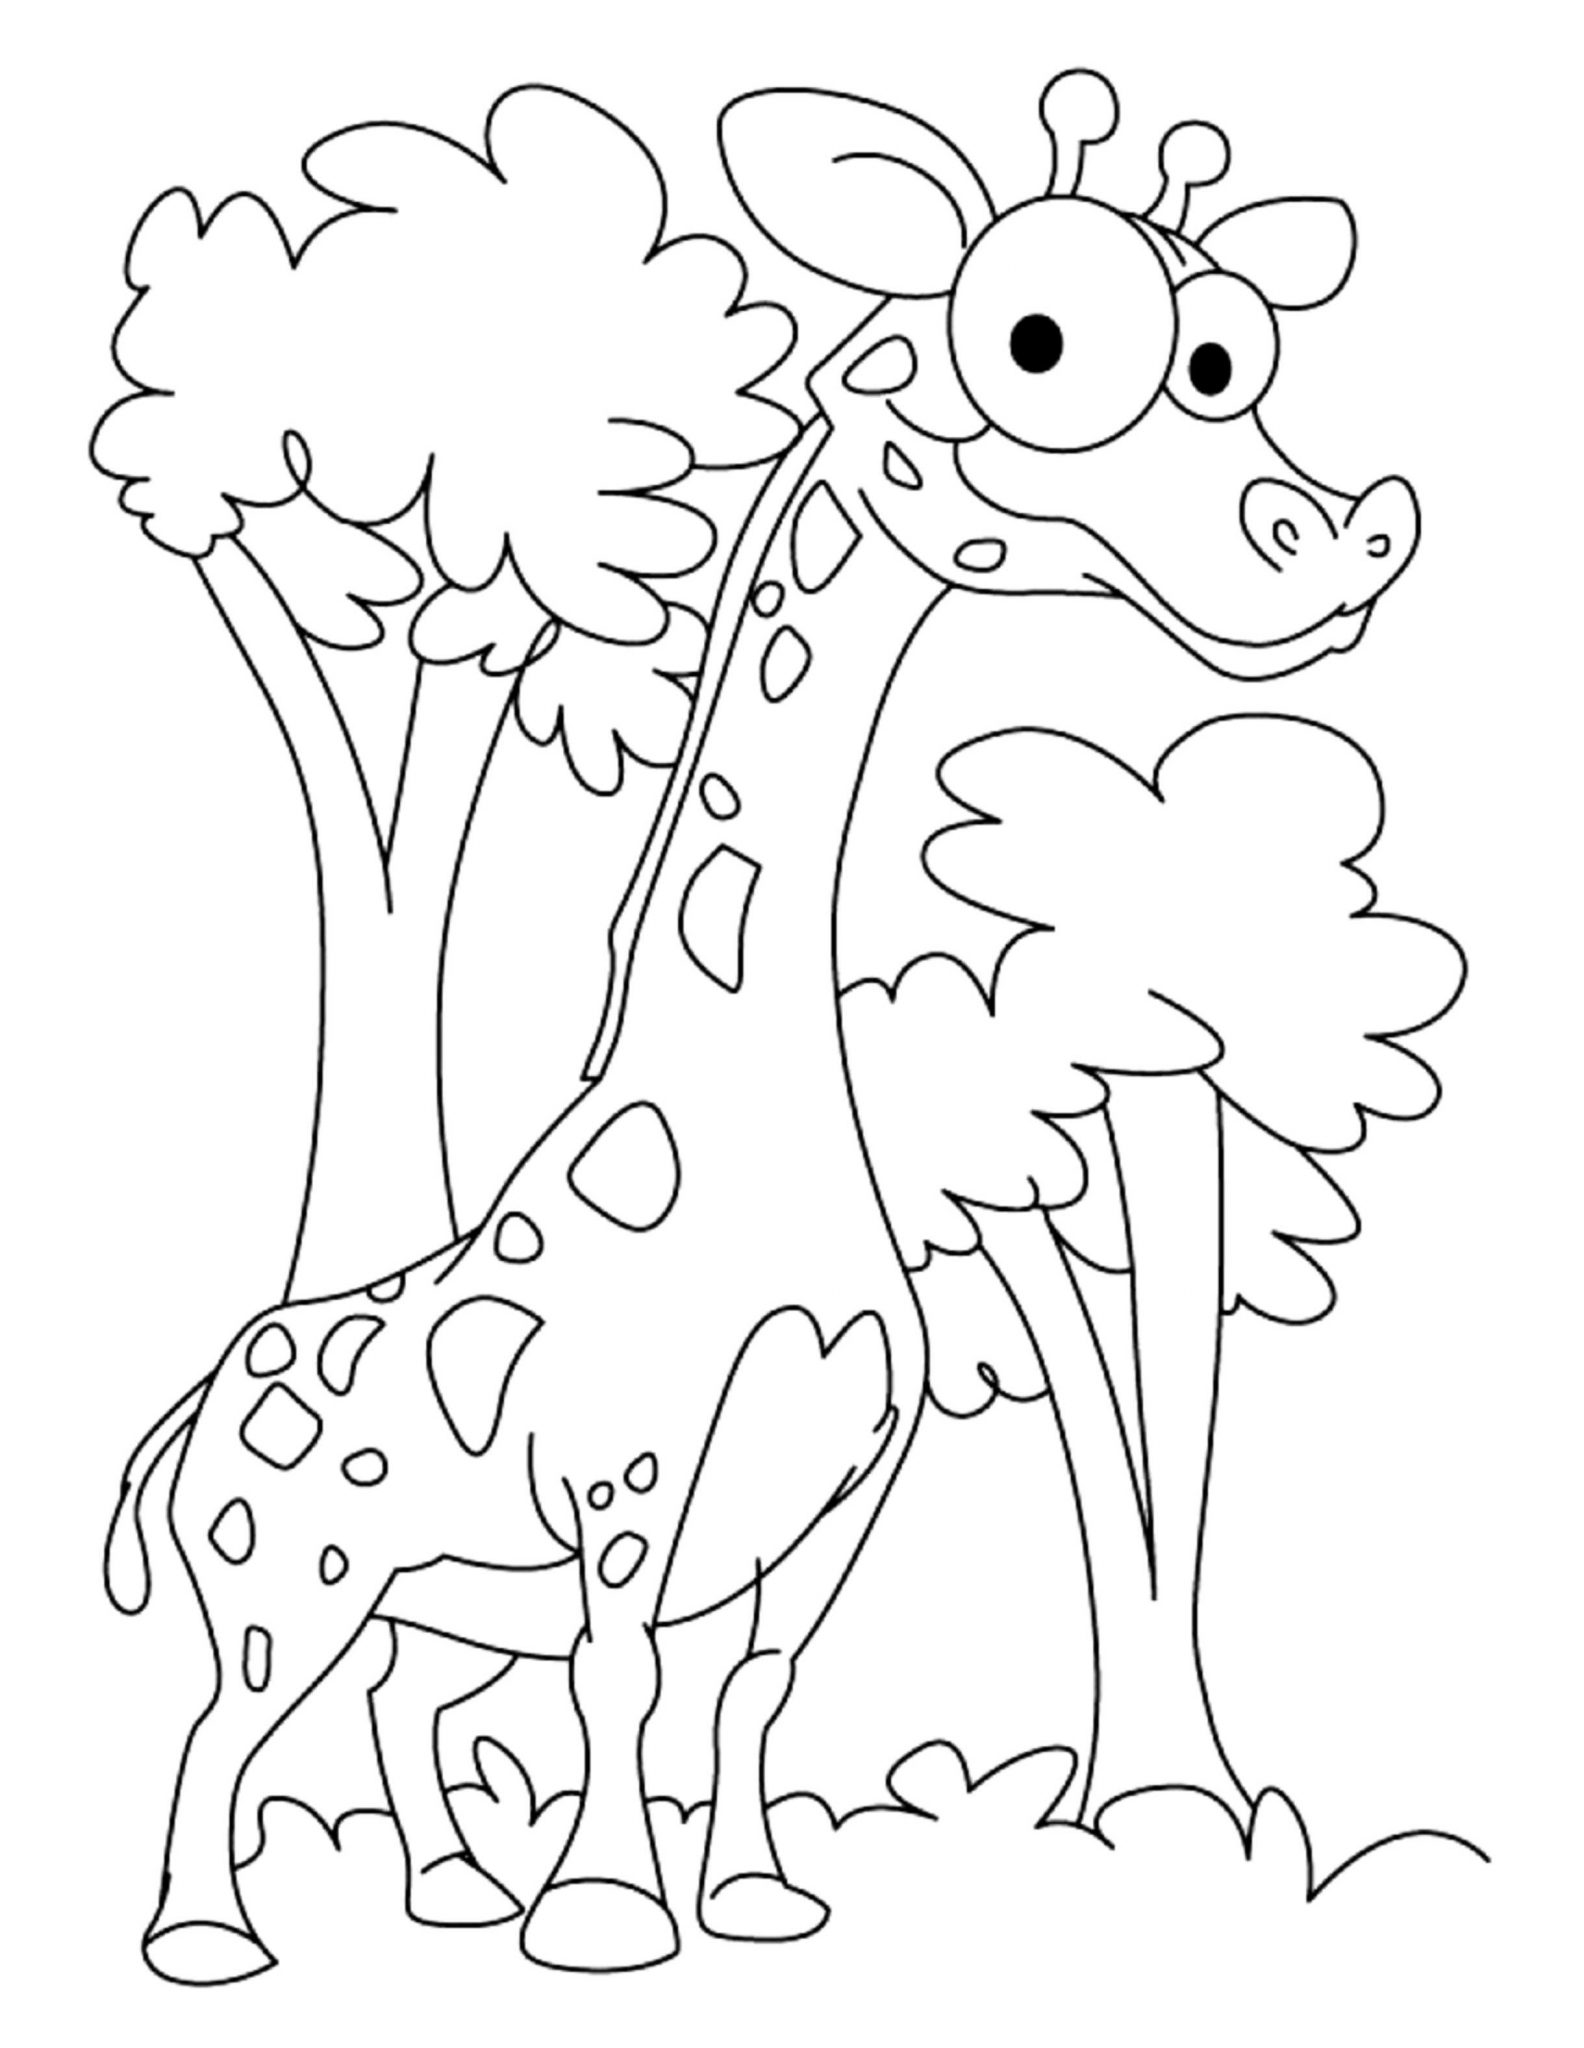 print amp download giraffe coloring pages for kids to have fun